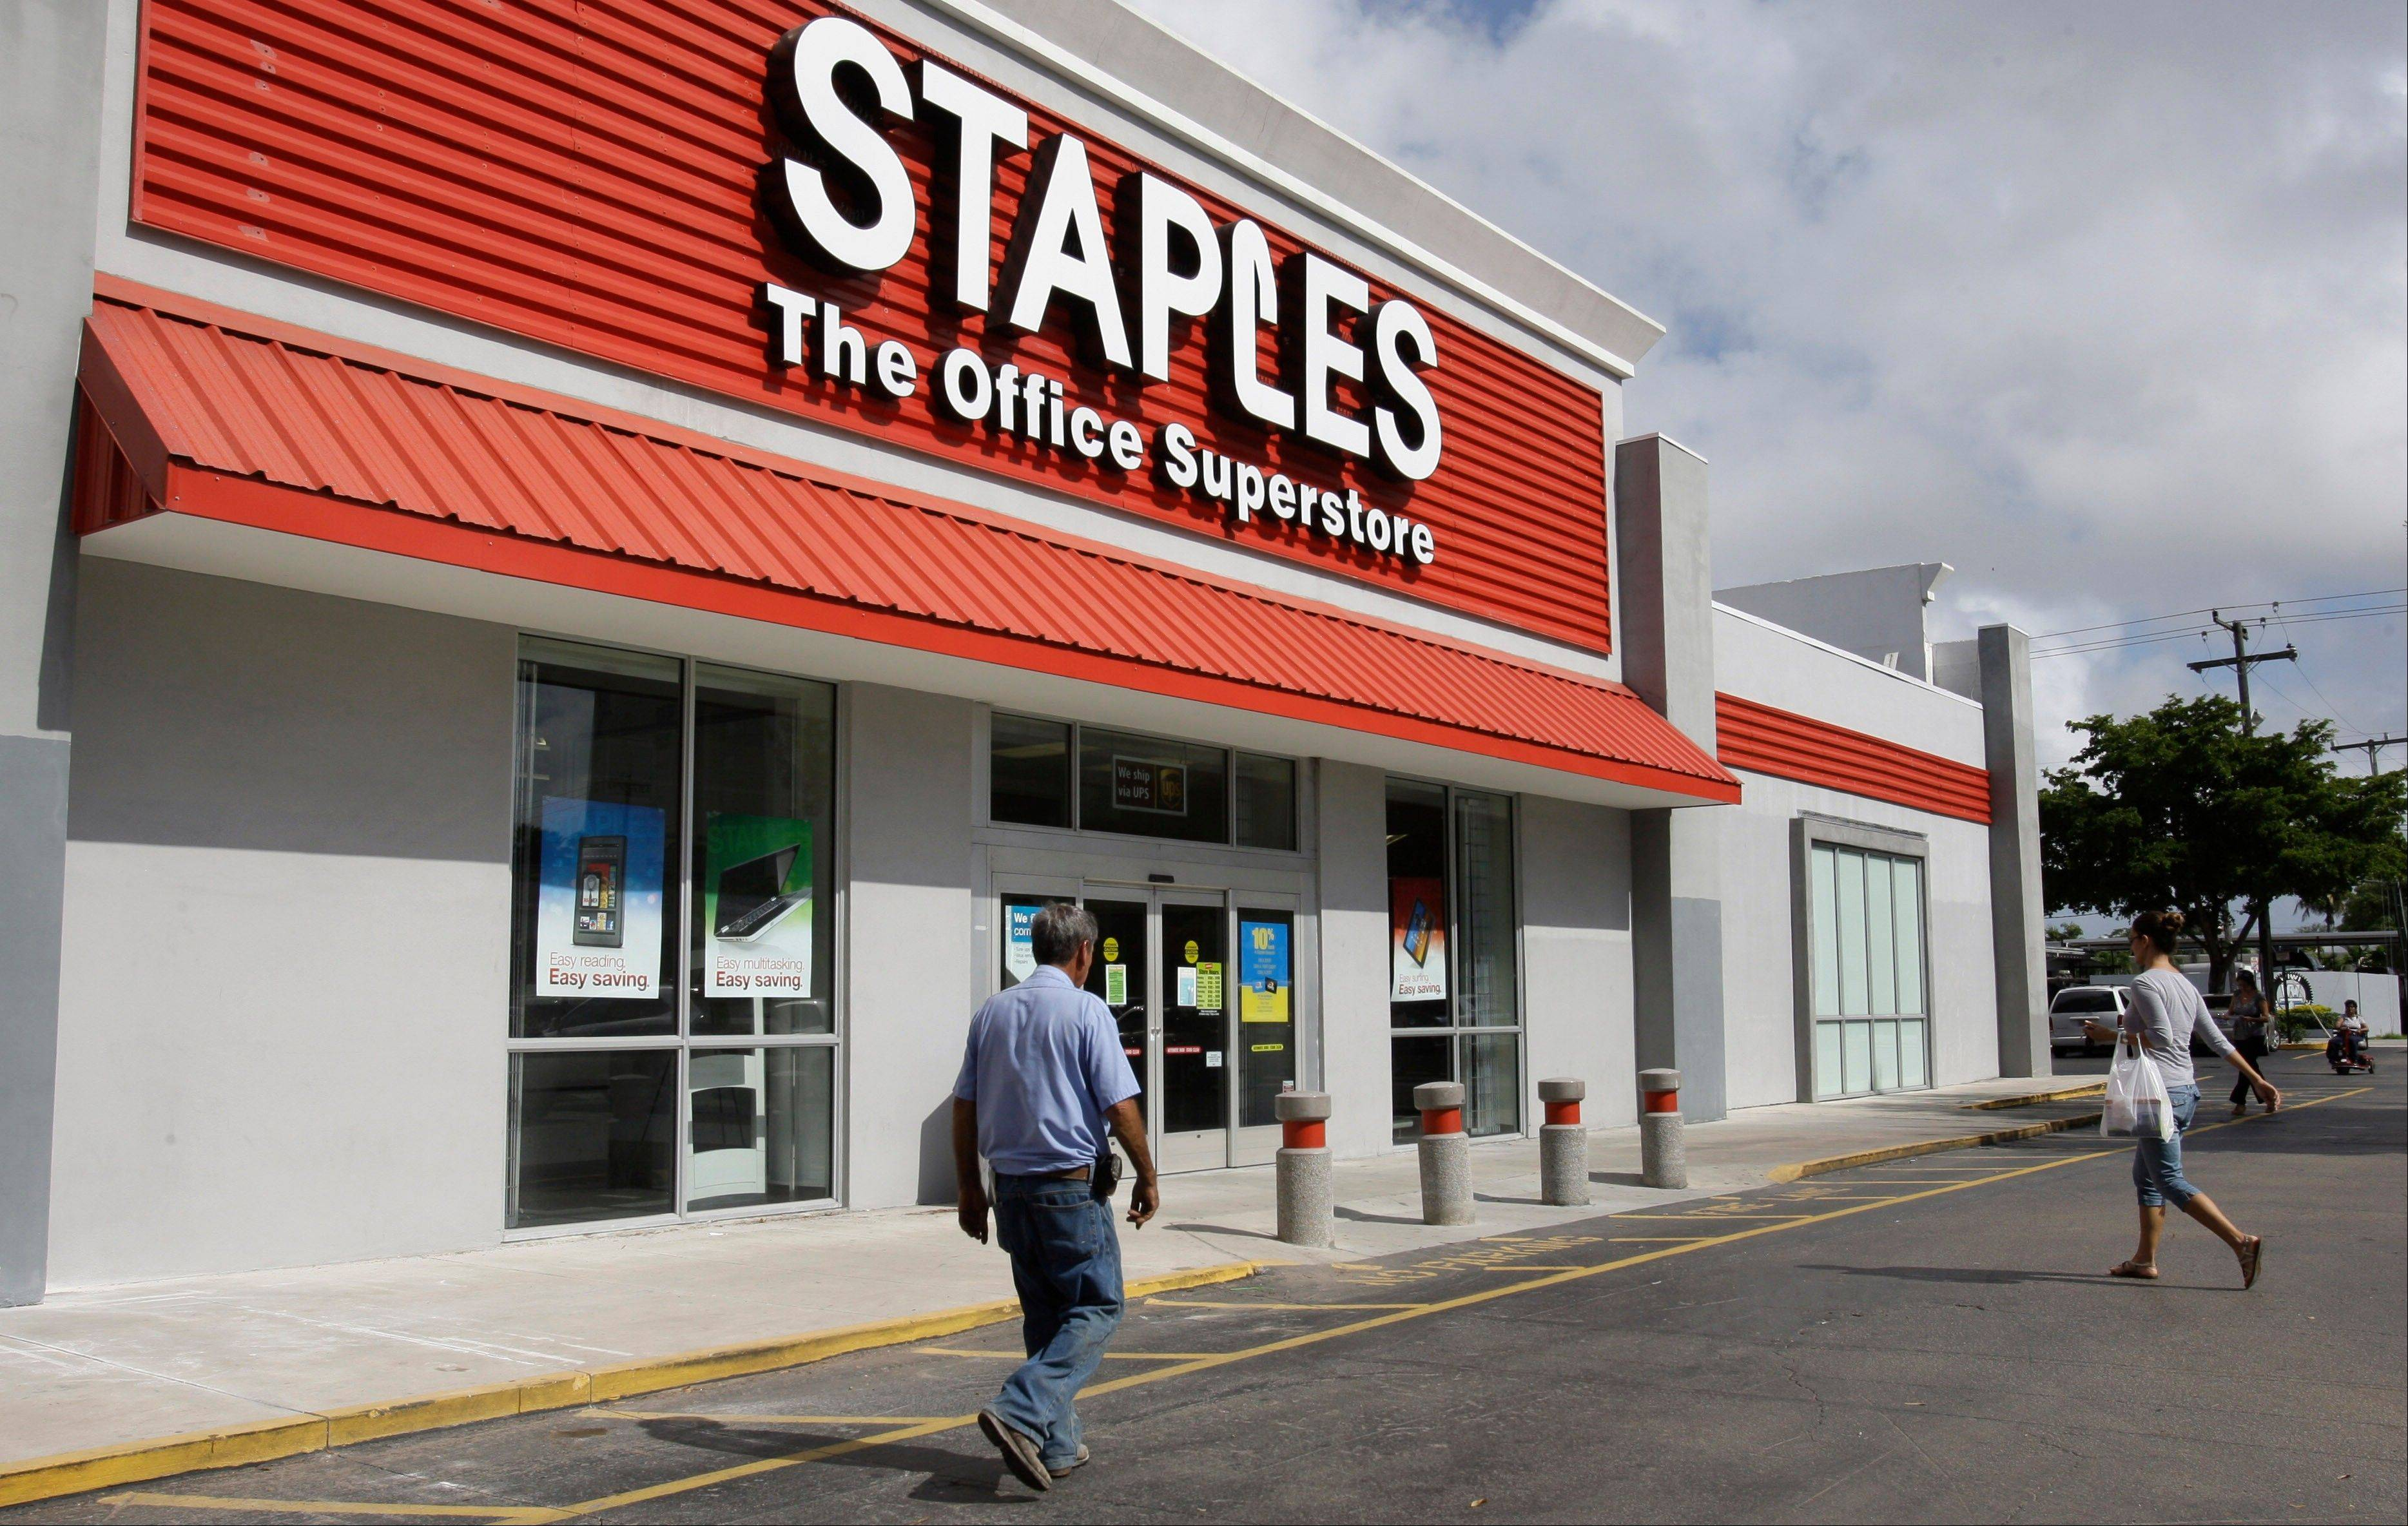 Staples' fiscal fourth-quarter net income dropped 72 percent, dragged down by charges related to store closings and other matters. Its adjusted results topped Wall Street's view, but its forecast for this year was below analysts' estimates.